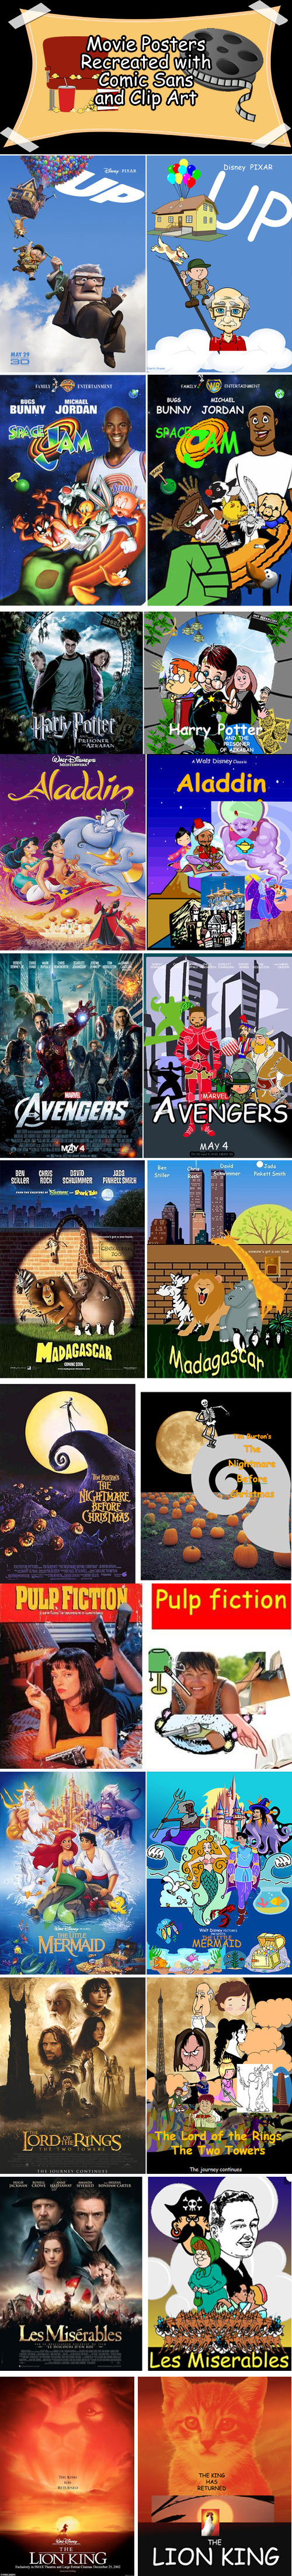 funny-movie-poster-recreated-Clip-Art